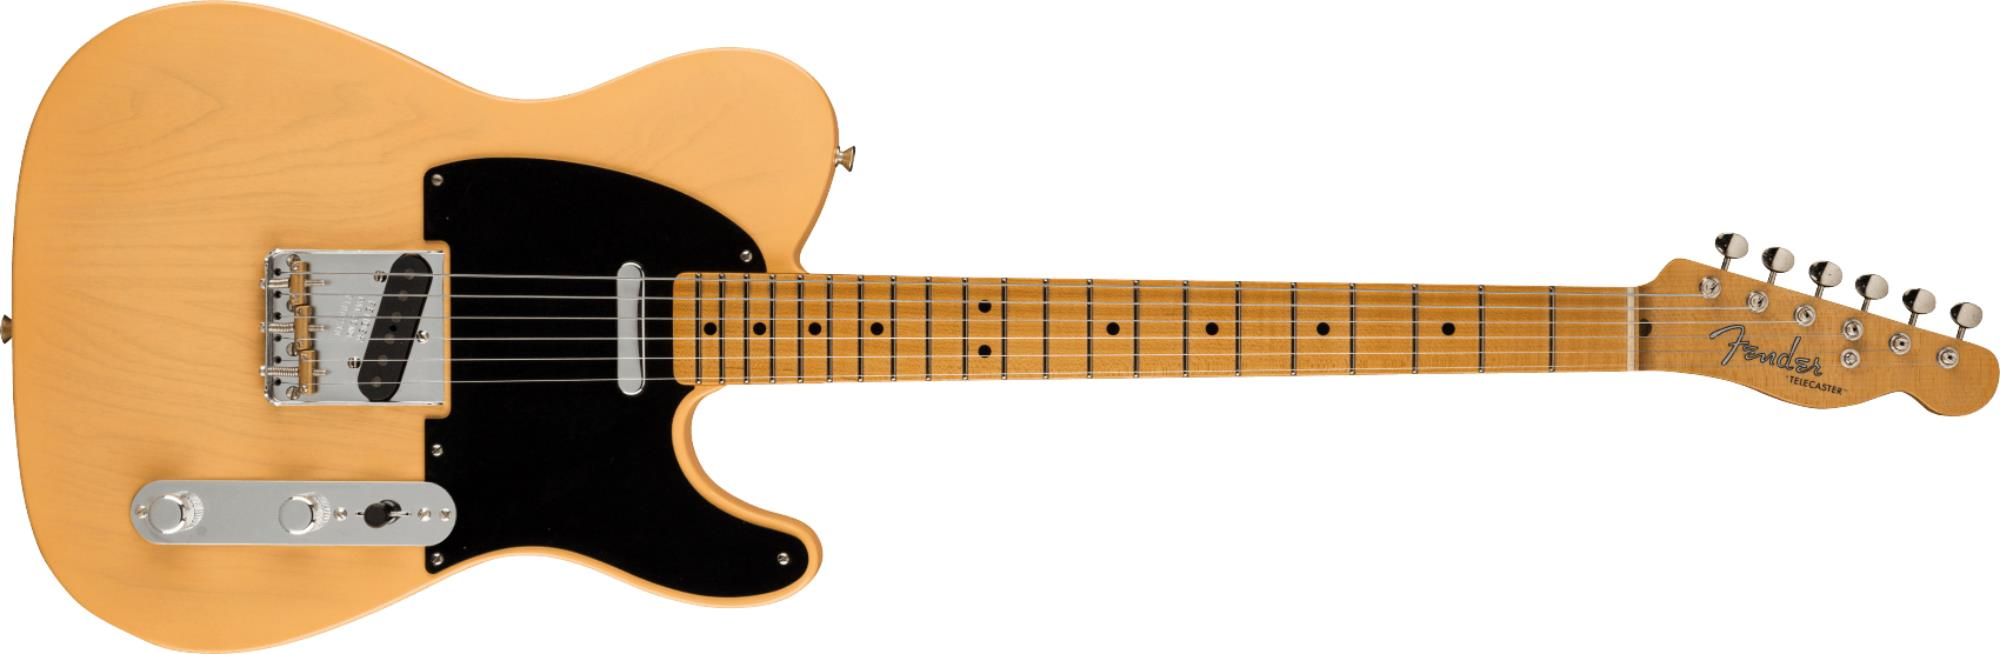 FENDER-Limited-Edition-51-Telecaster-Journeyman-Relic-Maple-Fingerboard-Aged-Nocaster-Blonde-sku-571005345